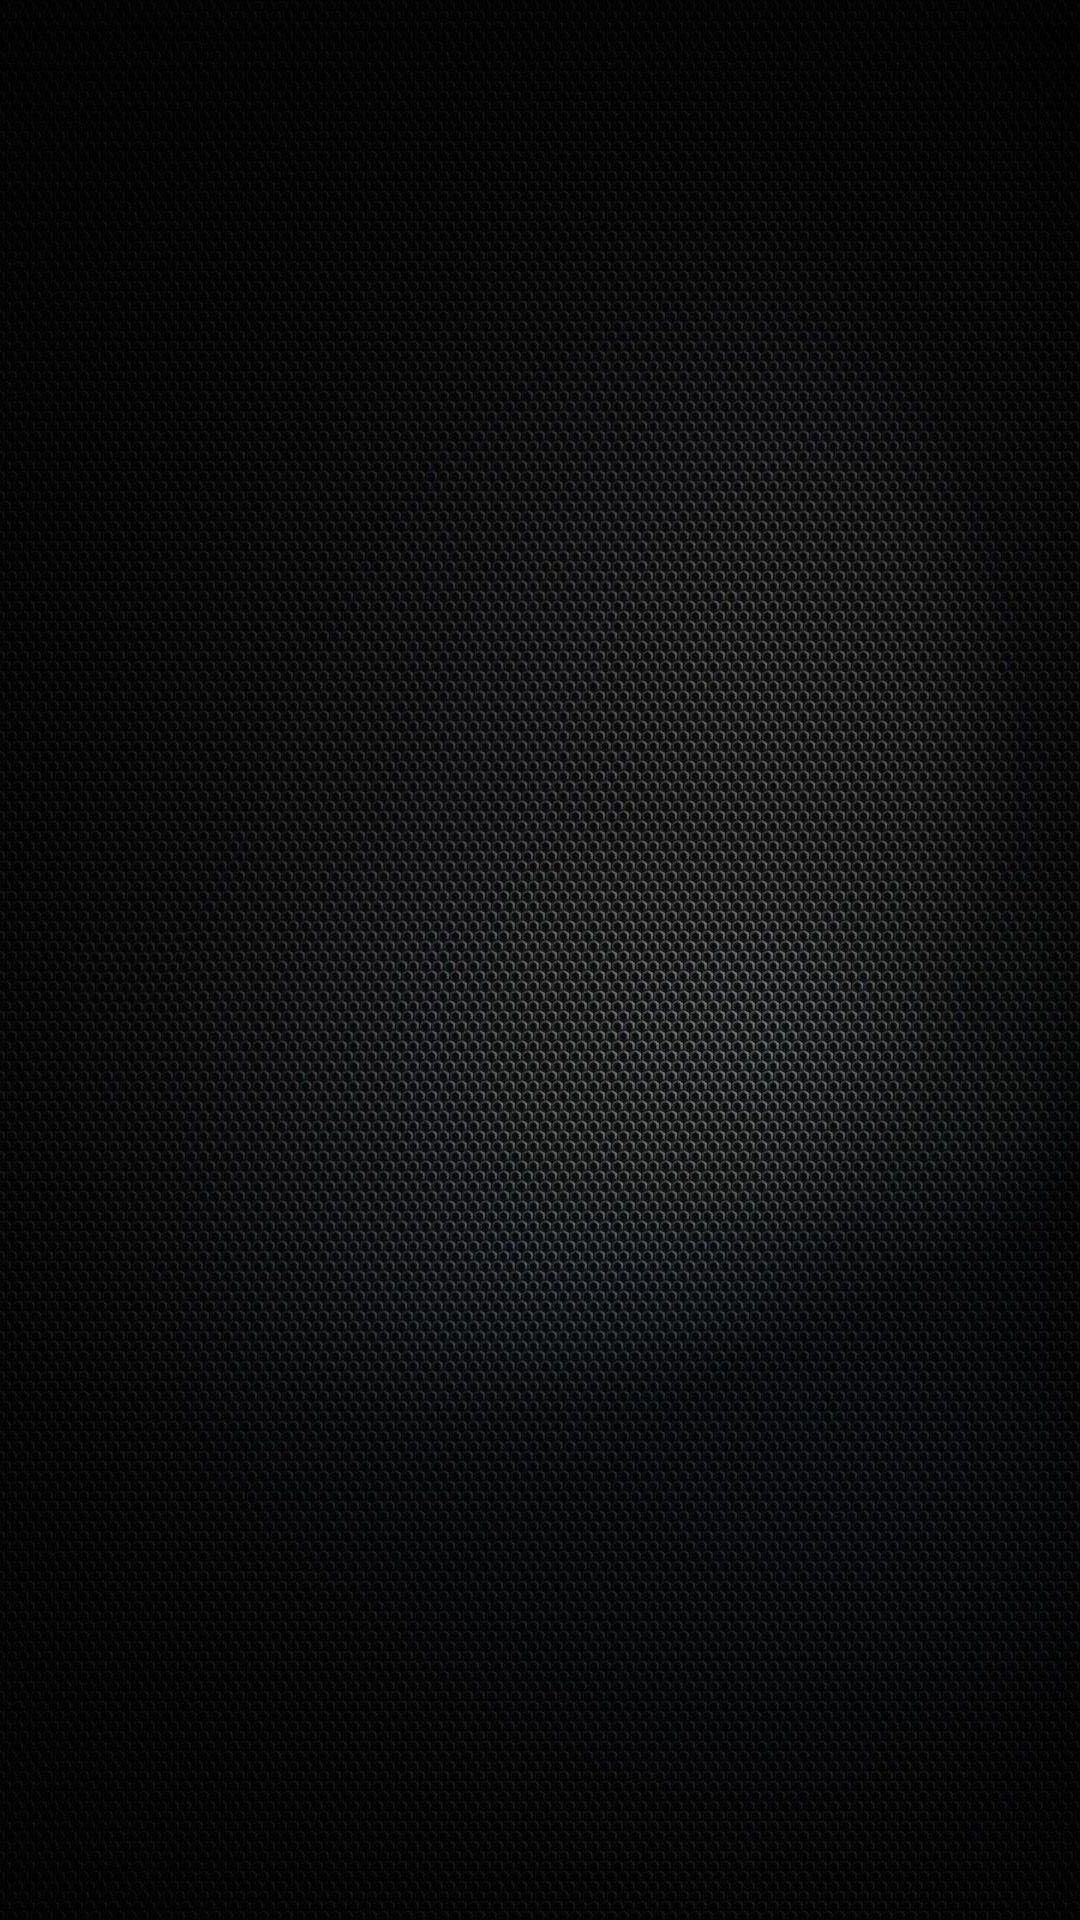 Pure Black Wallpapers 4k Hd Pure Black Backgrounds On Wallpaperbat